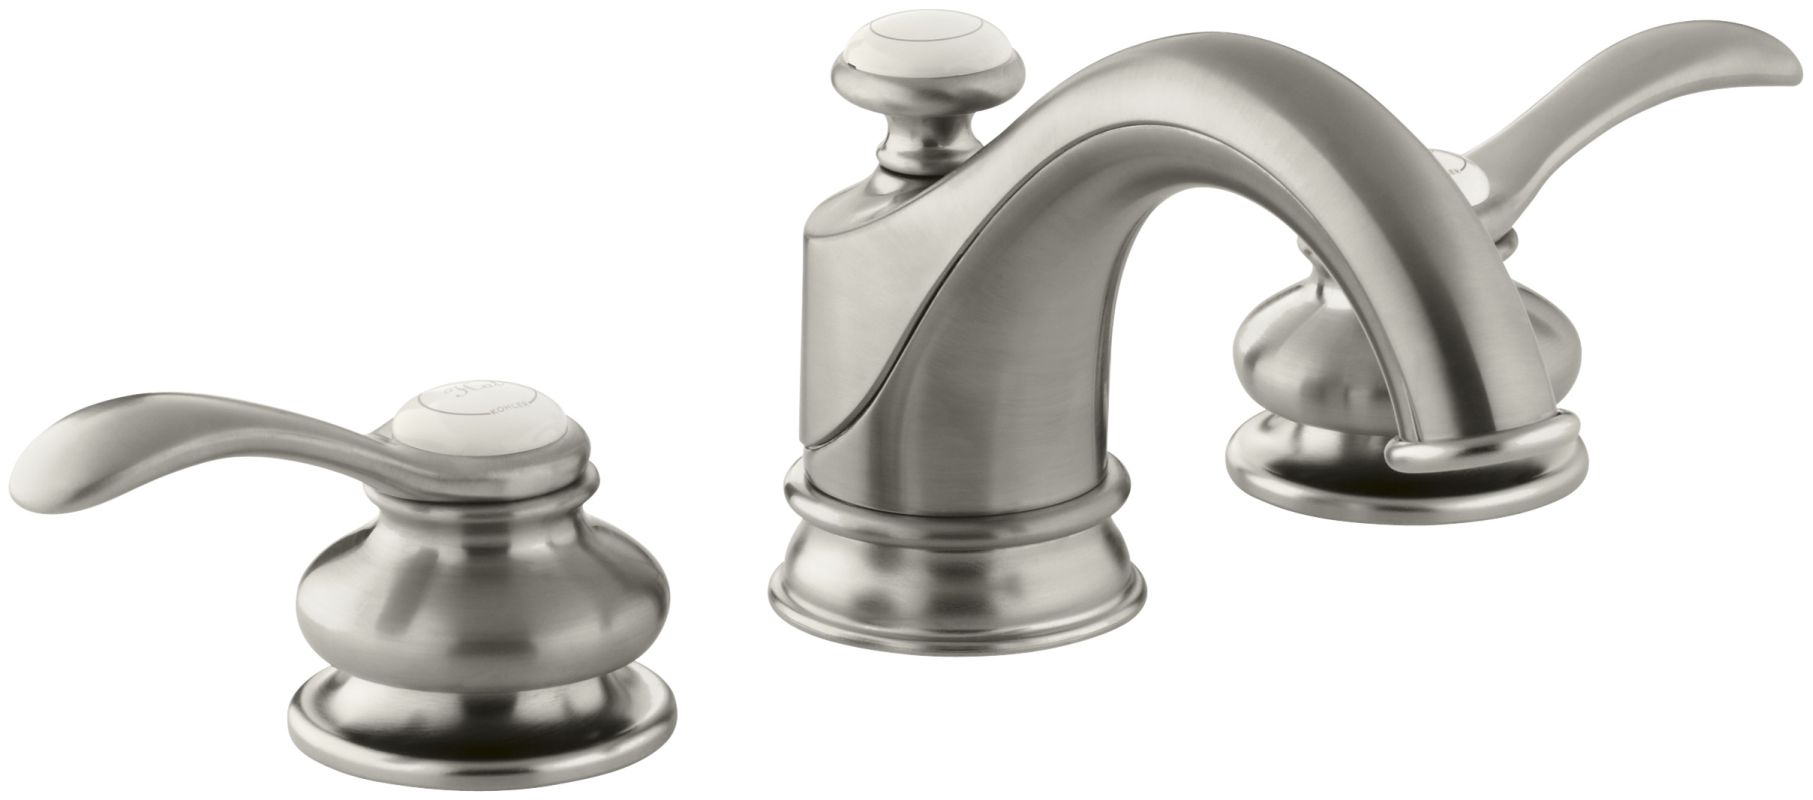 kohler k 12265 4 bathroom faucet build 19019